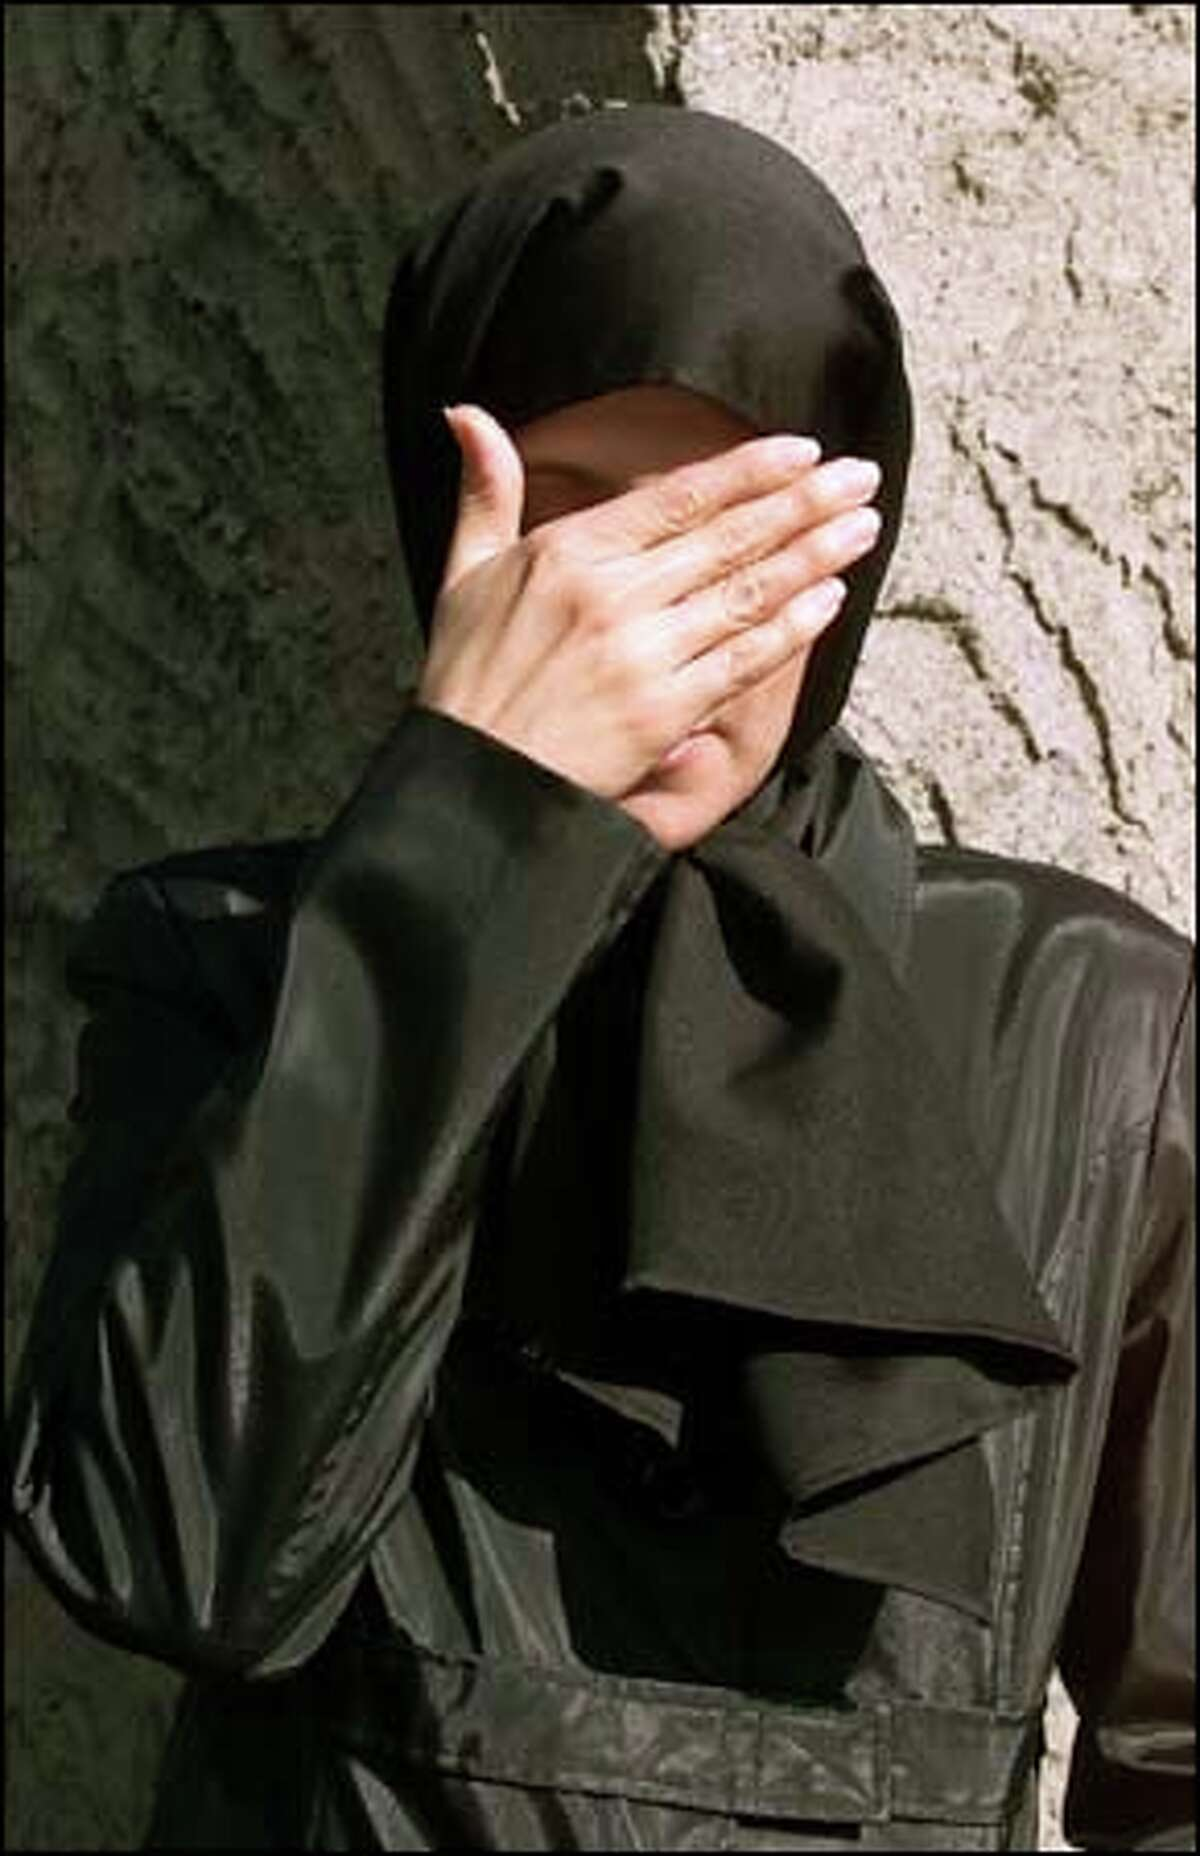 D. Parvaz, wearing a hijaab, hides her face not from embarrassment but because of fears for her safety.